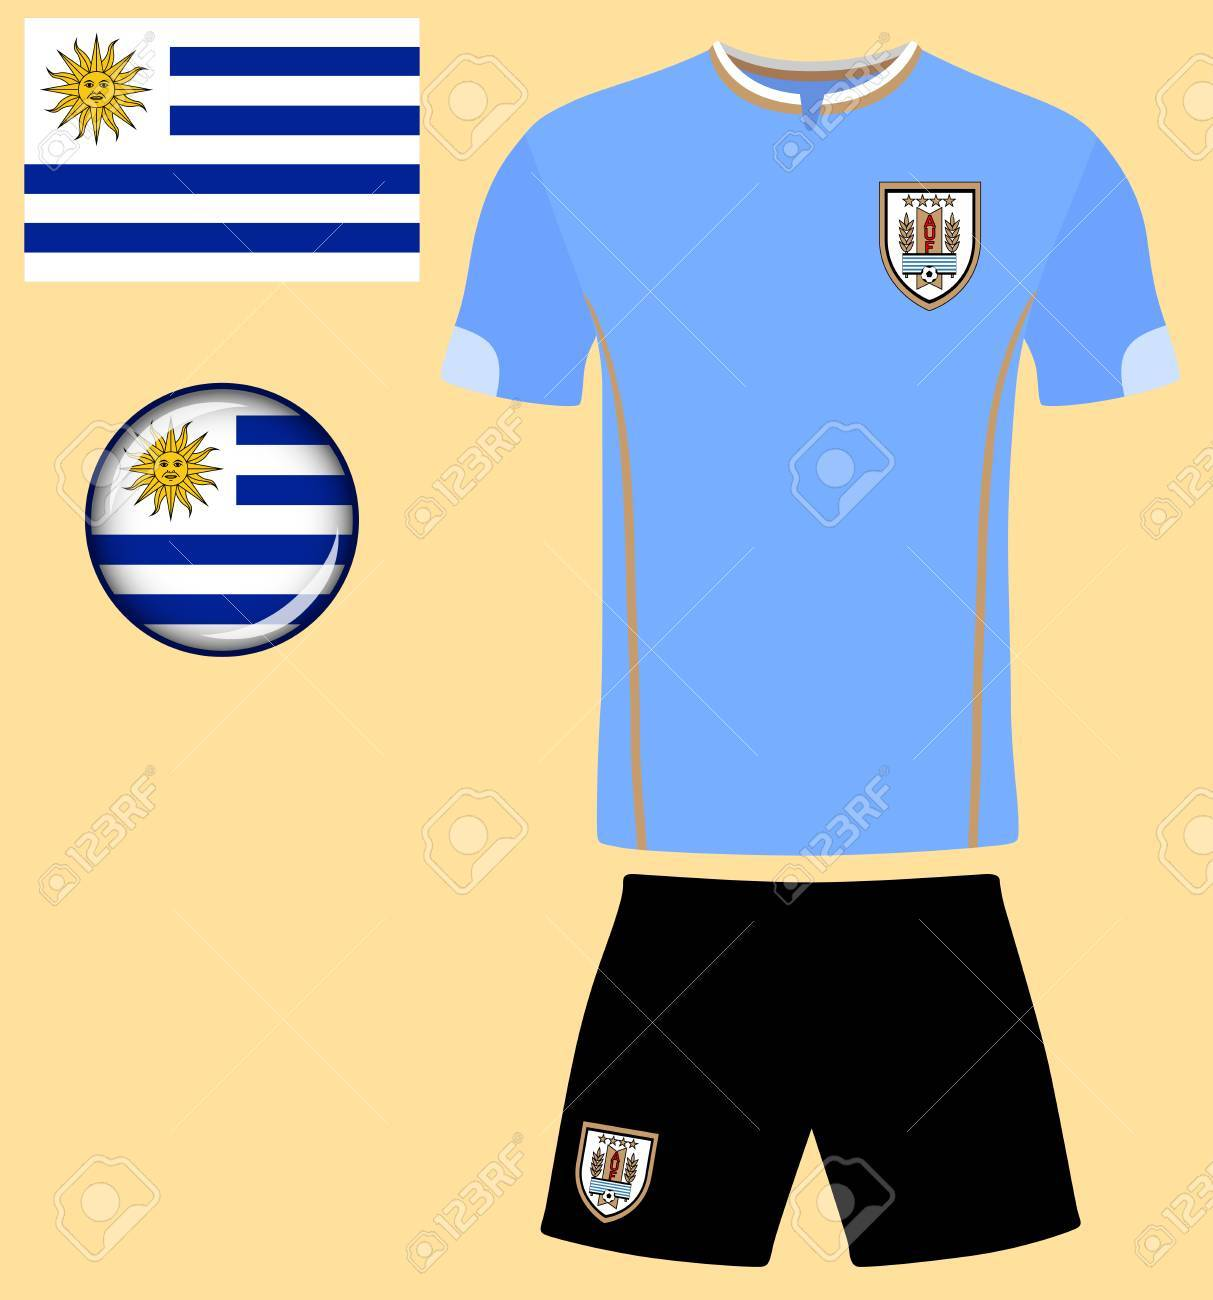 f93a8e438b9 Uruguay Football Jersey. Vector graphic illustration representing the national  football jersey of Uruguay. Stock